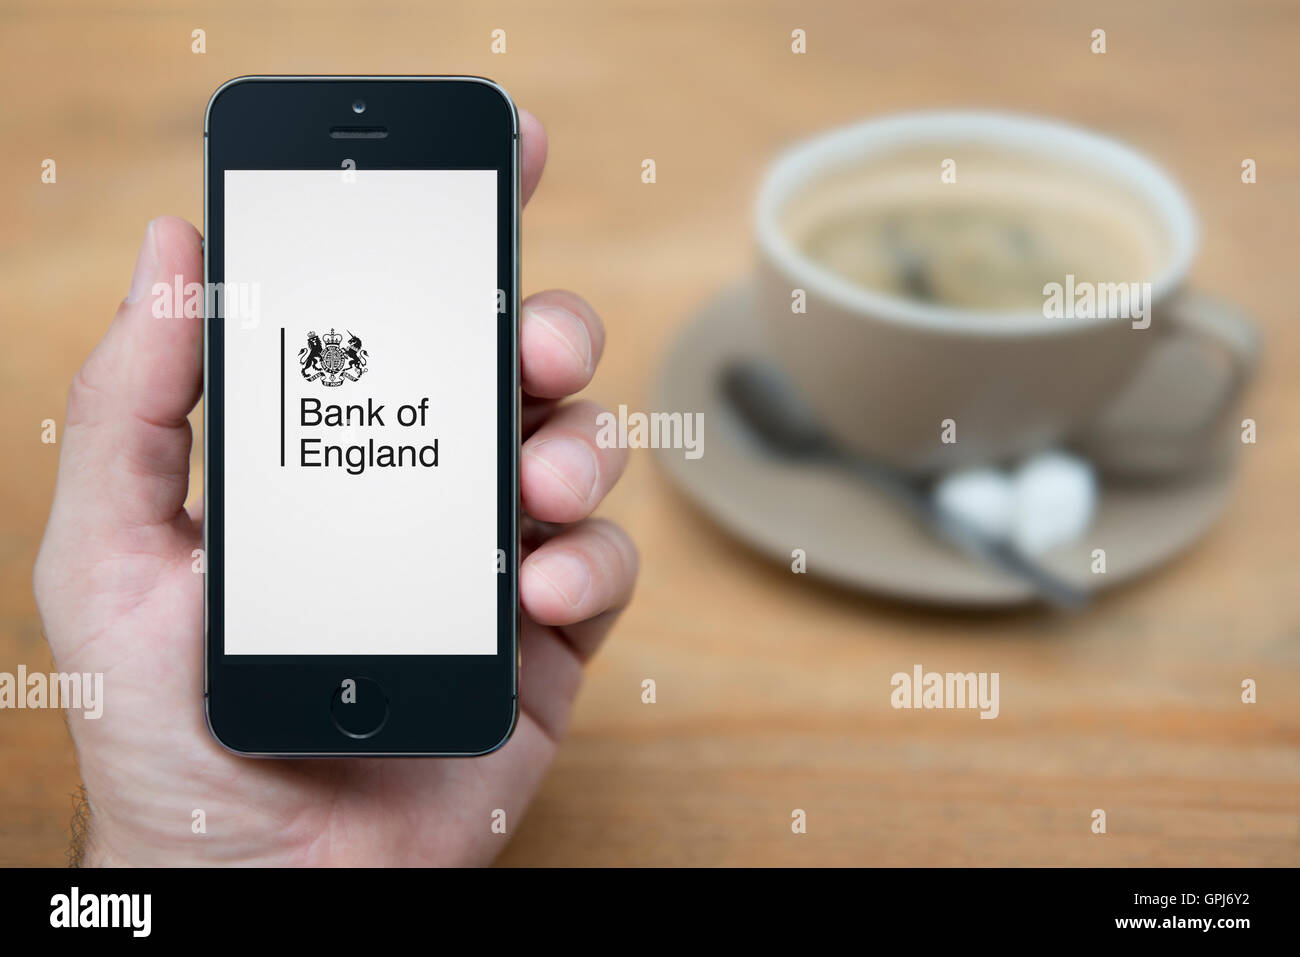 A man looks at his iPhone which displays the Bank of England logo, while sat with a cup of coffee (Editorial use - Stock Image